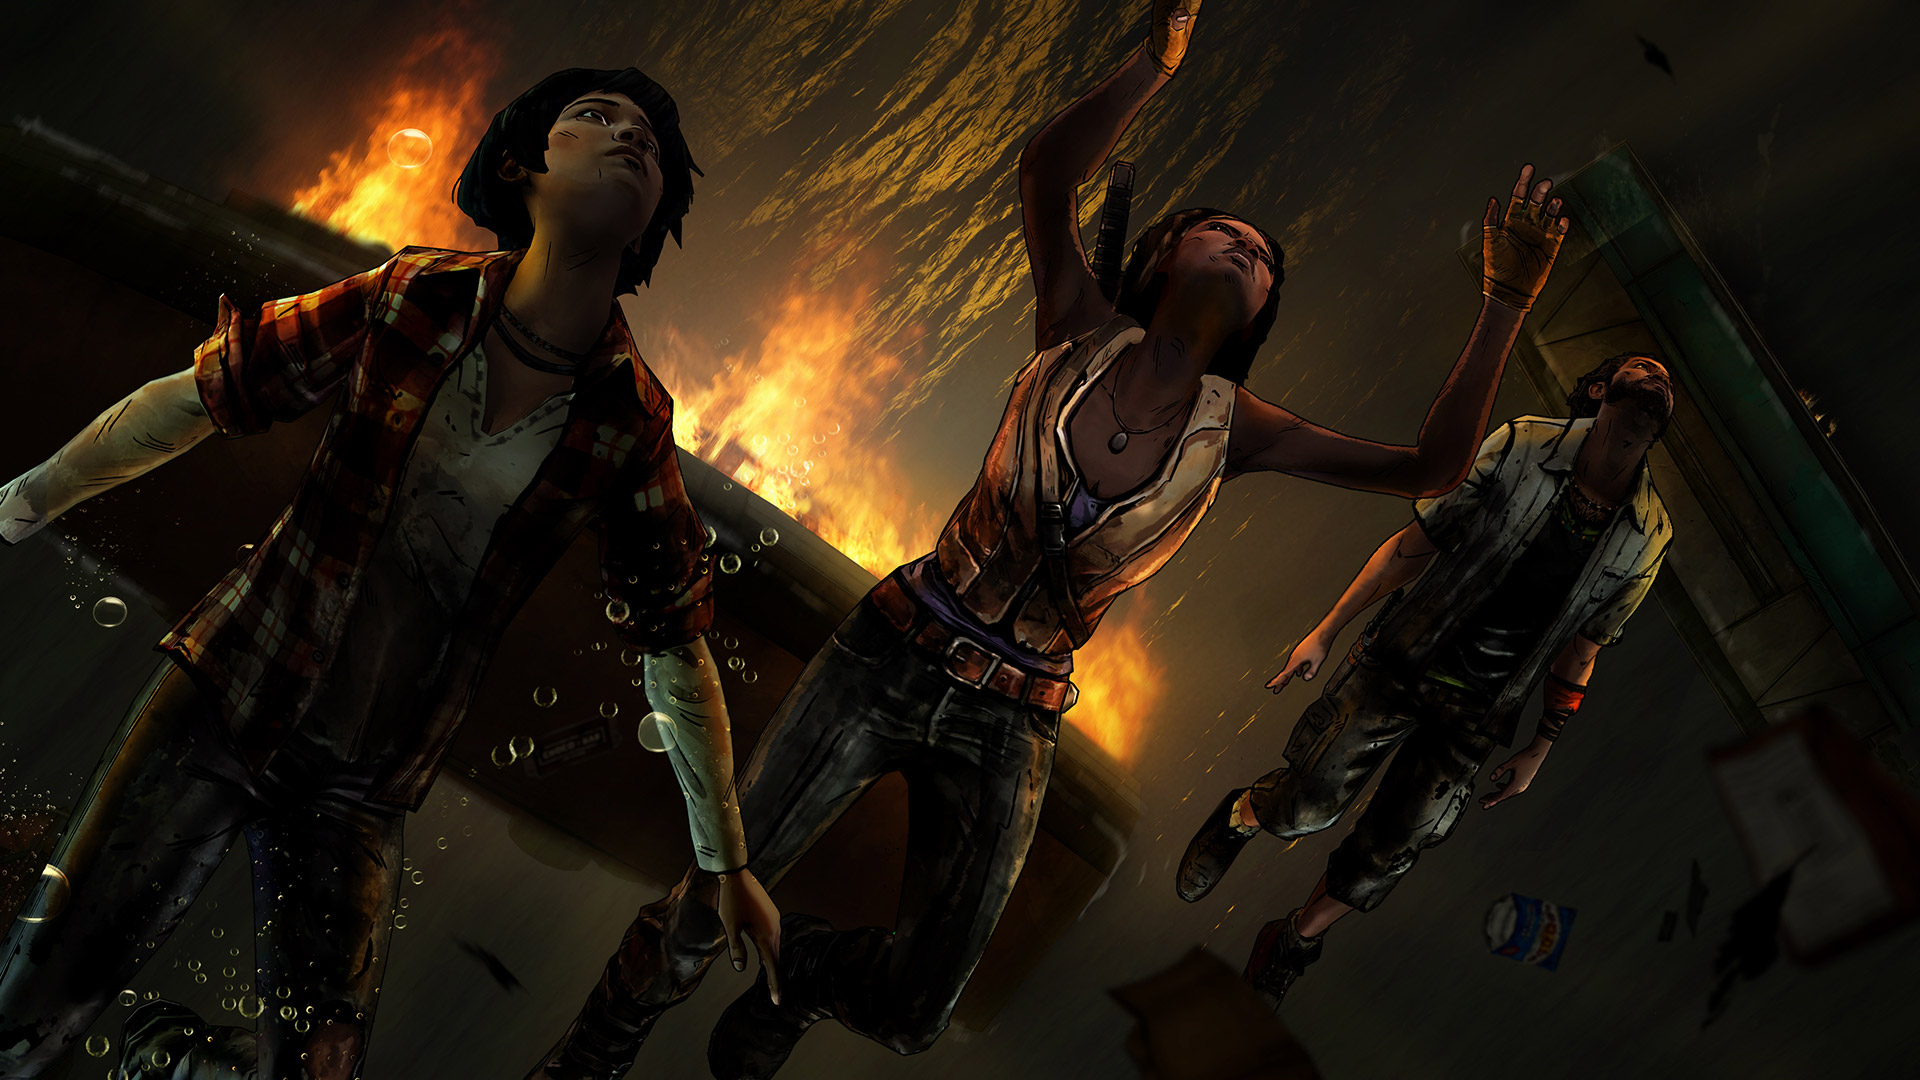 The Walking Dead: Michonne Wallpaper in 1920x1080